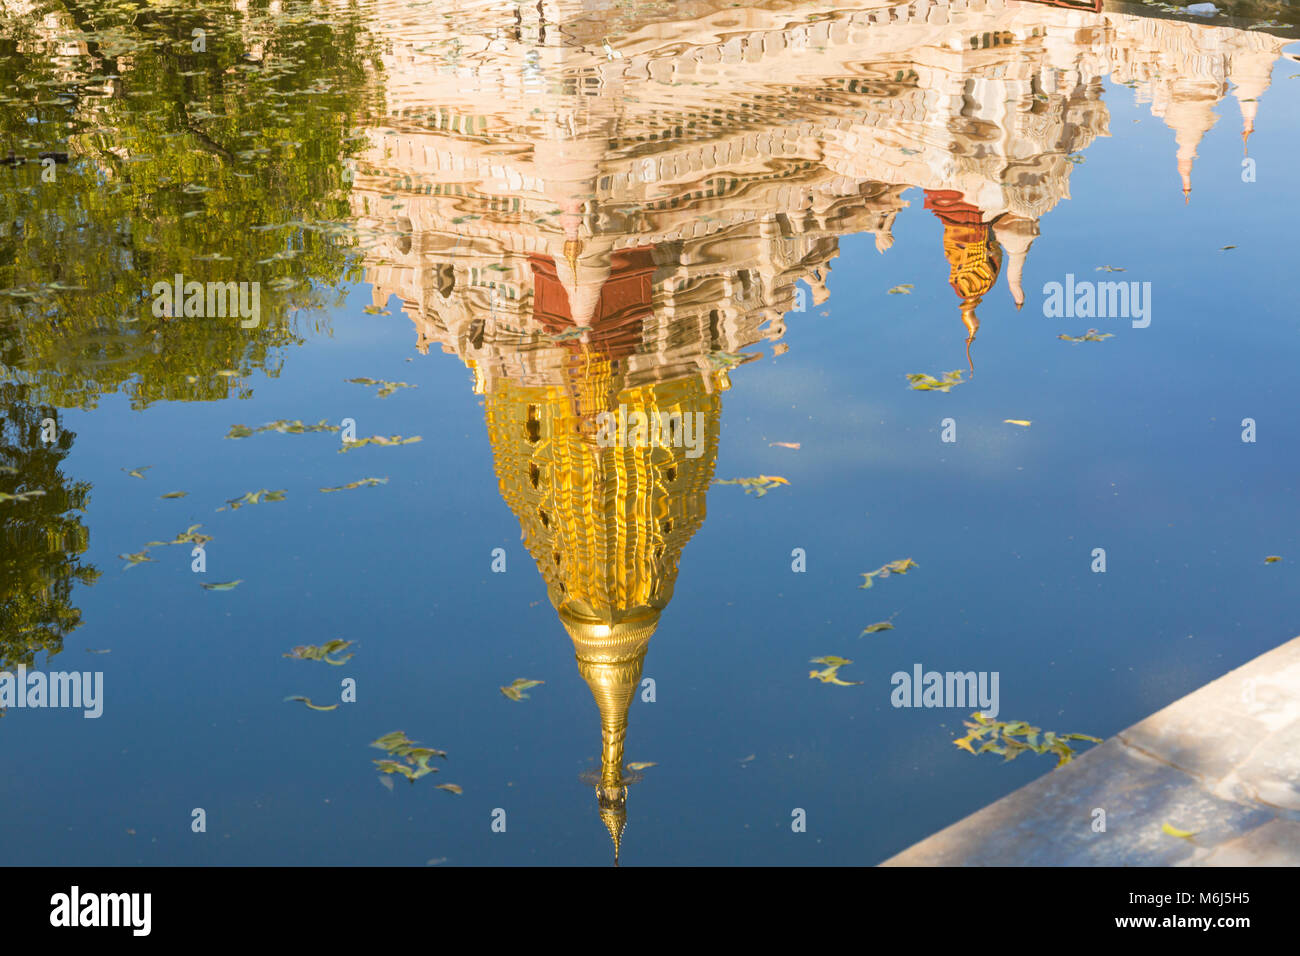 Reflection of Ananda Pagoda, Ananda Temple at Bagan, Myanmar (Burma), Asia in February - Stock Image